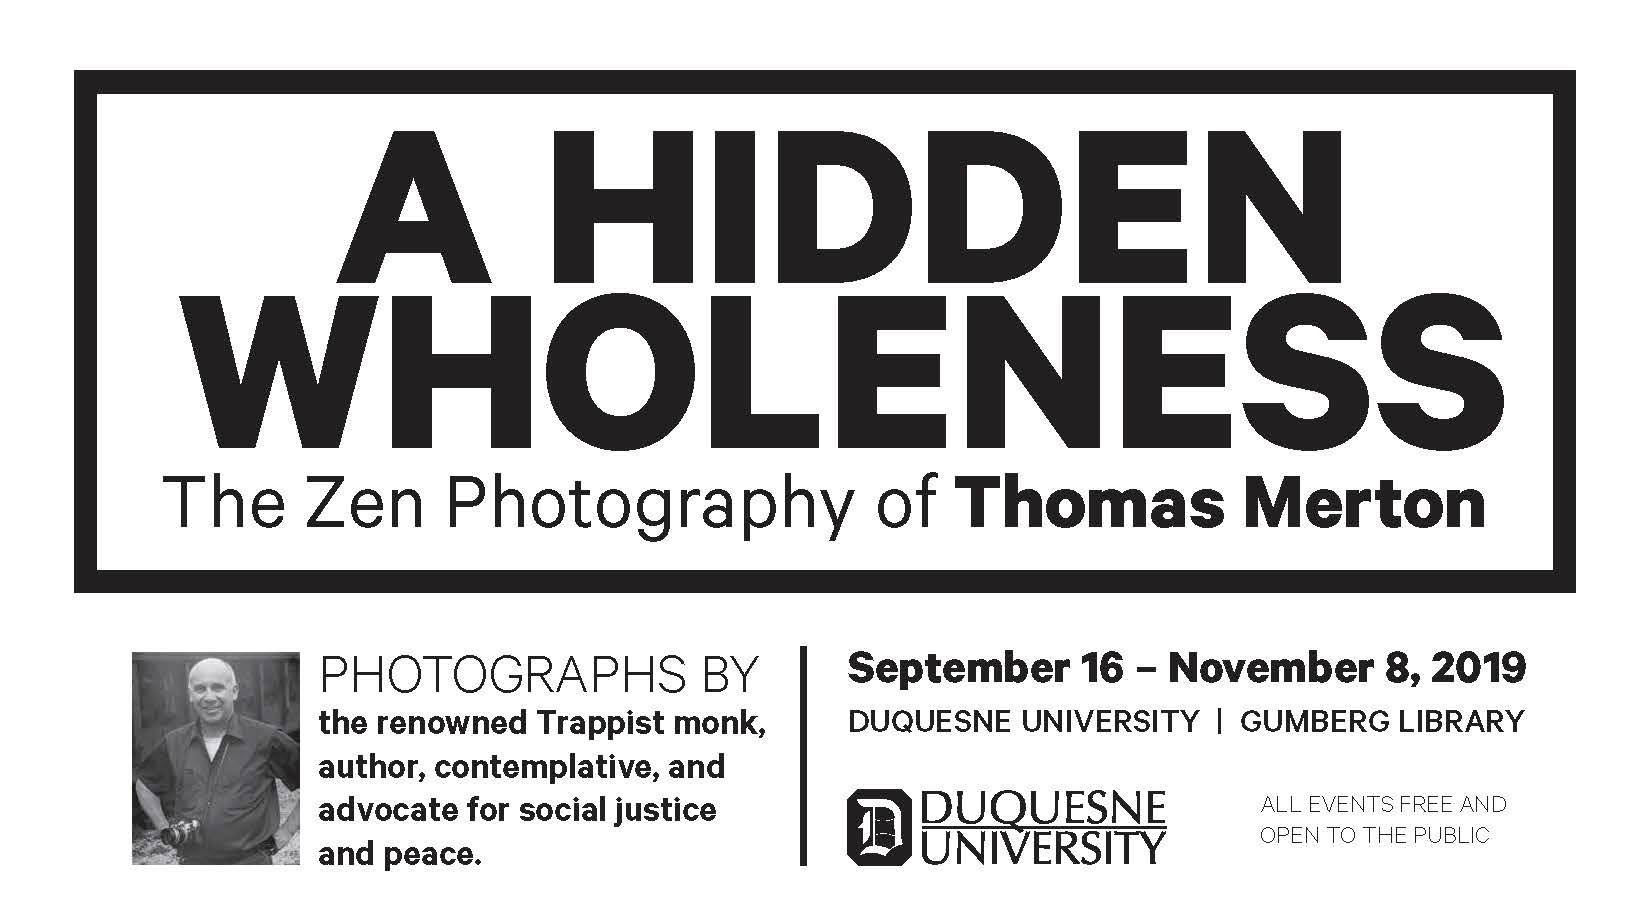 A Hidden Wholeness: The Zen Photography of Thomas Merton (September 16 - November 8)